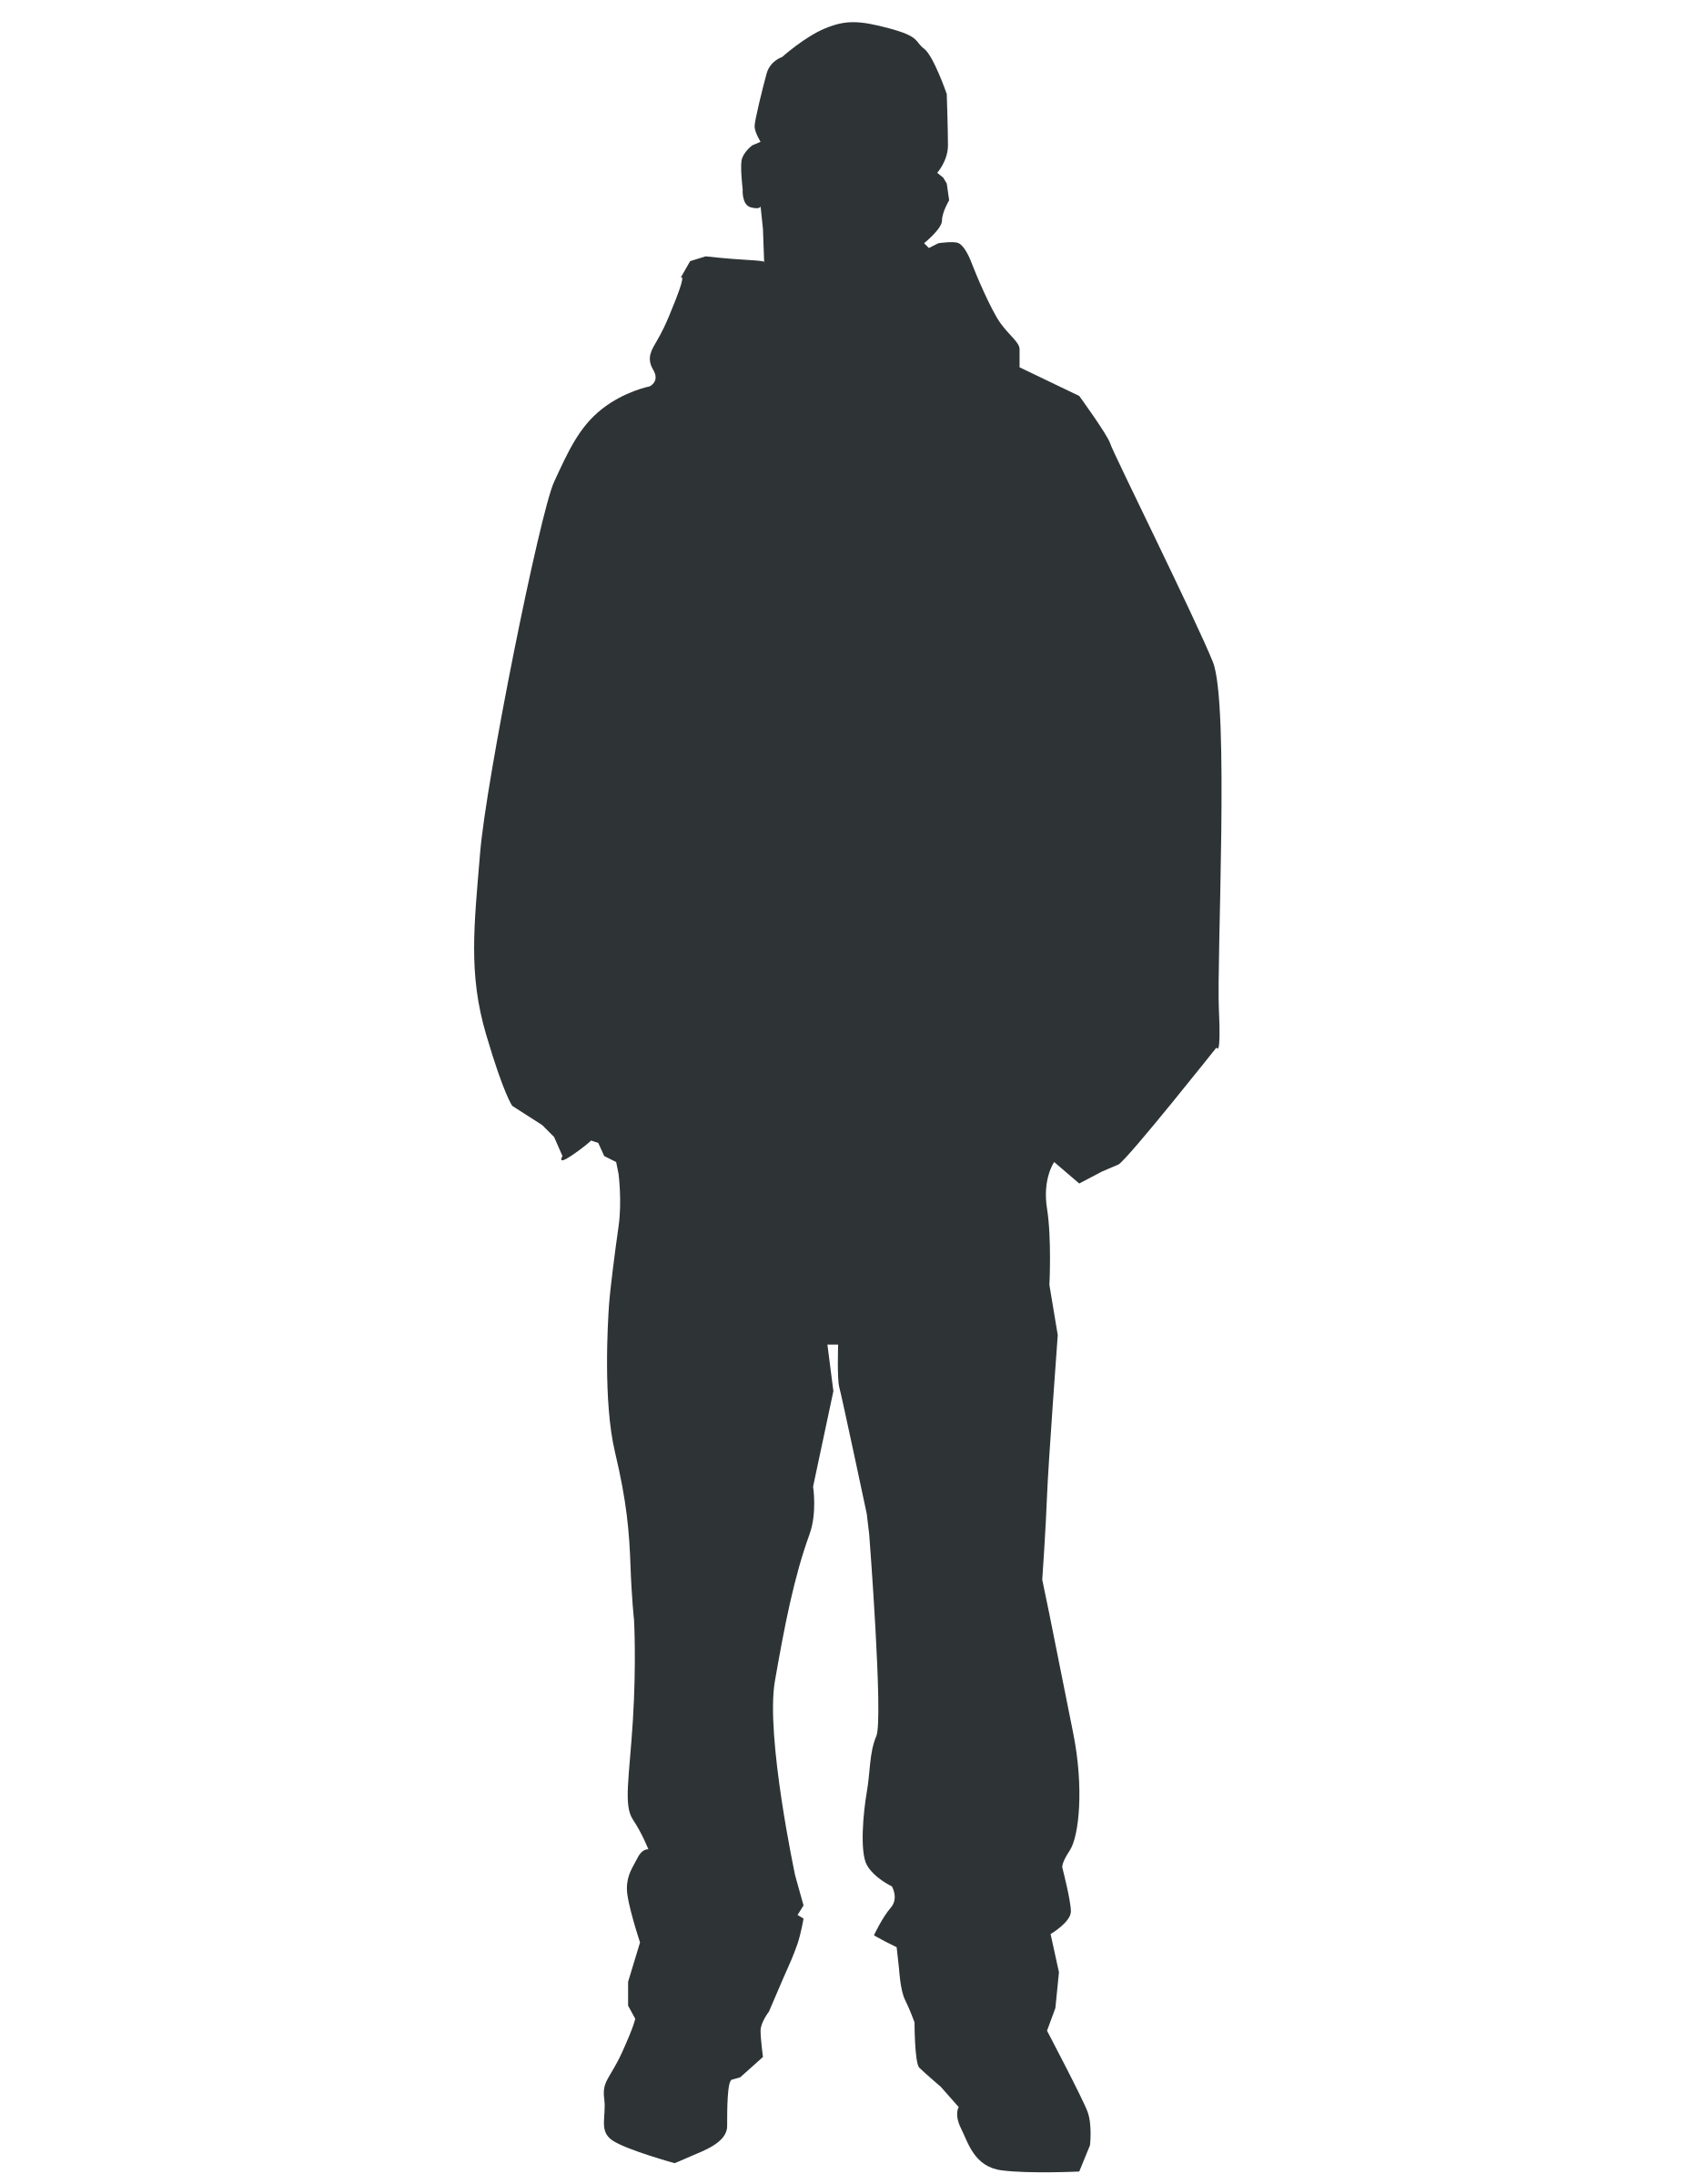 jpg stock Back clipart man back. People free on dumielauxepices.